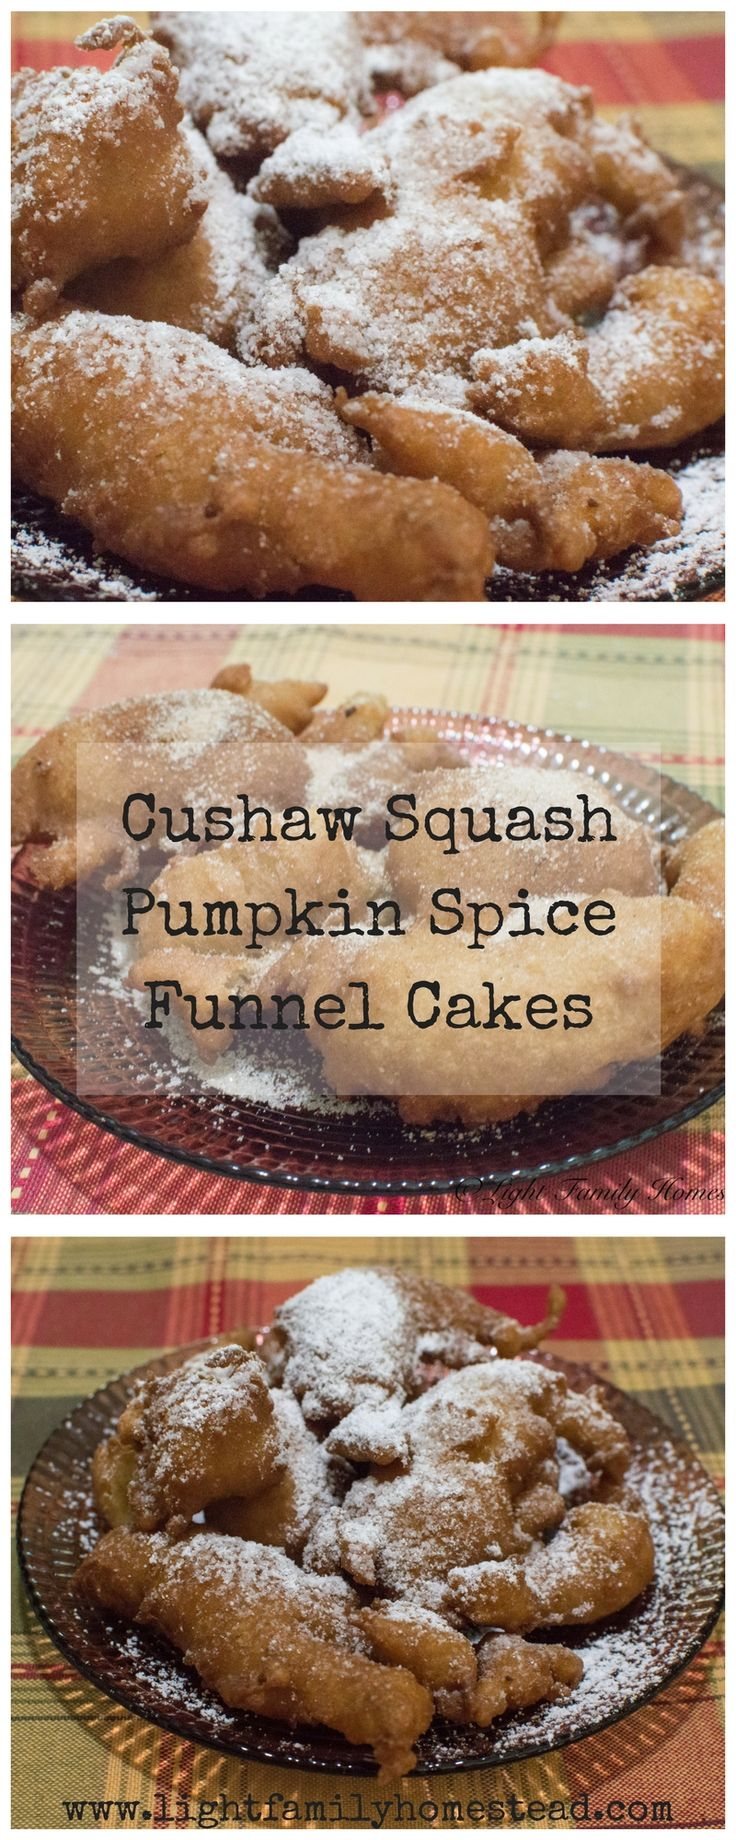 Cushaw Squash Pumpkin Spice Funnel Cakes-This recipe is just as good as it sounds. With the wonderful tastes of fall, you're sure to love this pumpkin spice funnel cake recipe. Learn how to make it by visiting our blog at www.lightfamilyhomestead.com. #pumpkinspice #funnelcake #fallrecipes #cushawsquash #cushawsquashrecipe #pumpkinspicerecipe #pumpkinspicefunnelcake #funnelcakerecipe